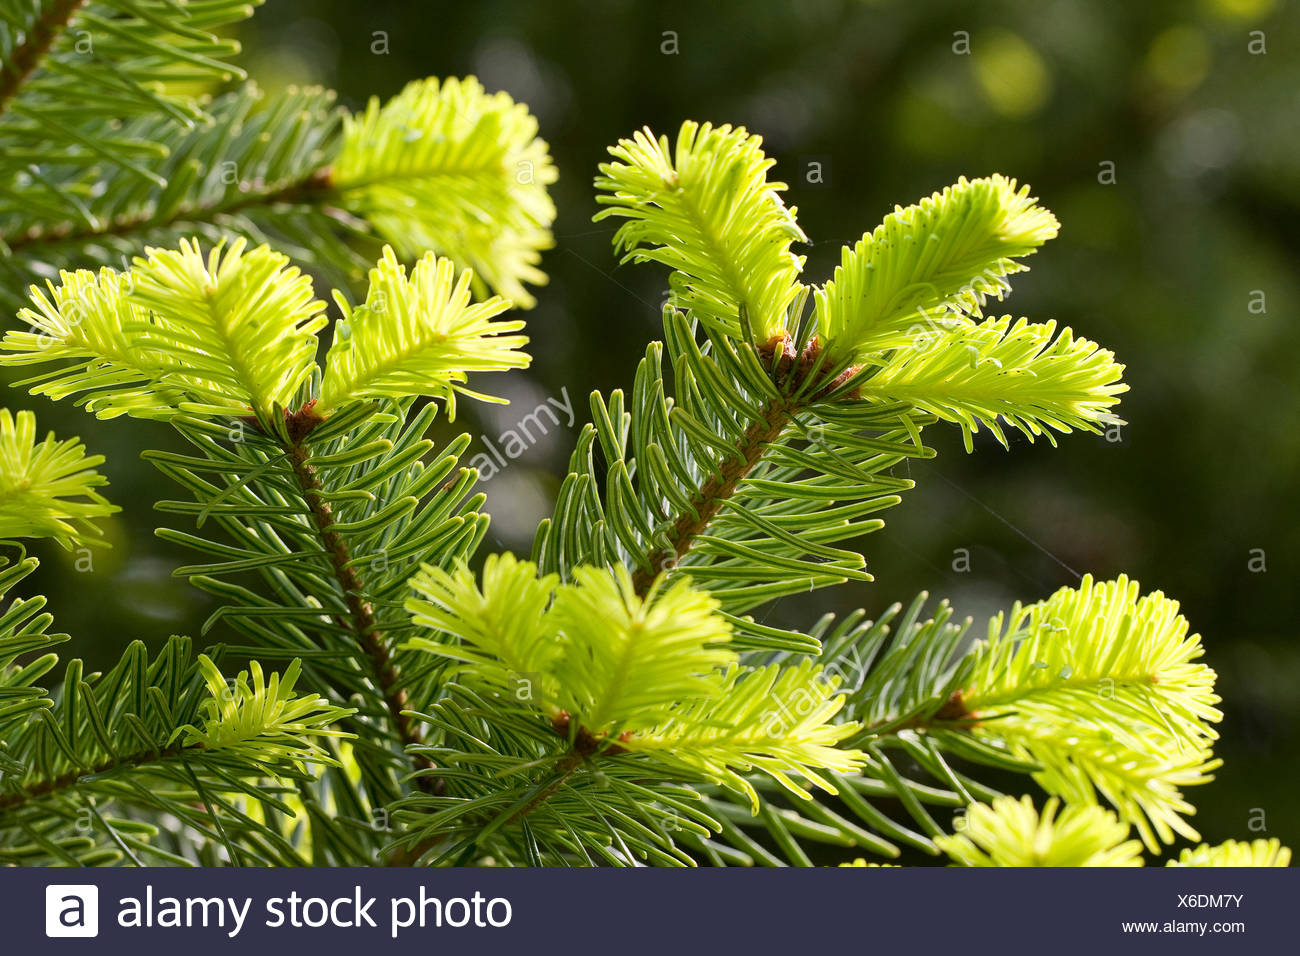 Nordmann Fir, Caucasian Fir, Christmas Tree (Abies nordmanniana), branches with young shoots - Stock Image